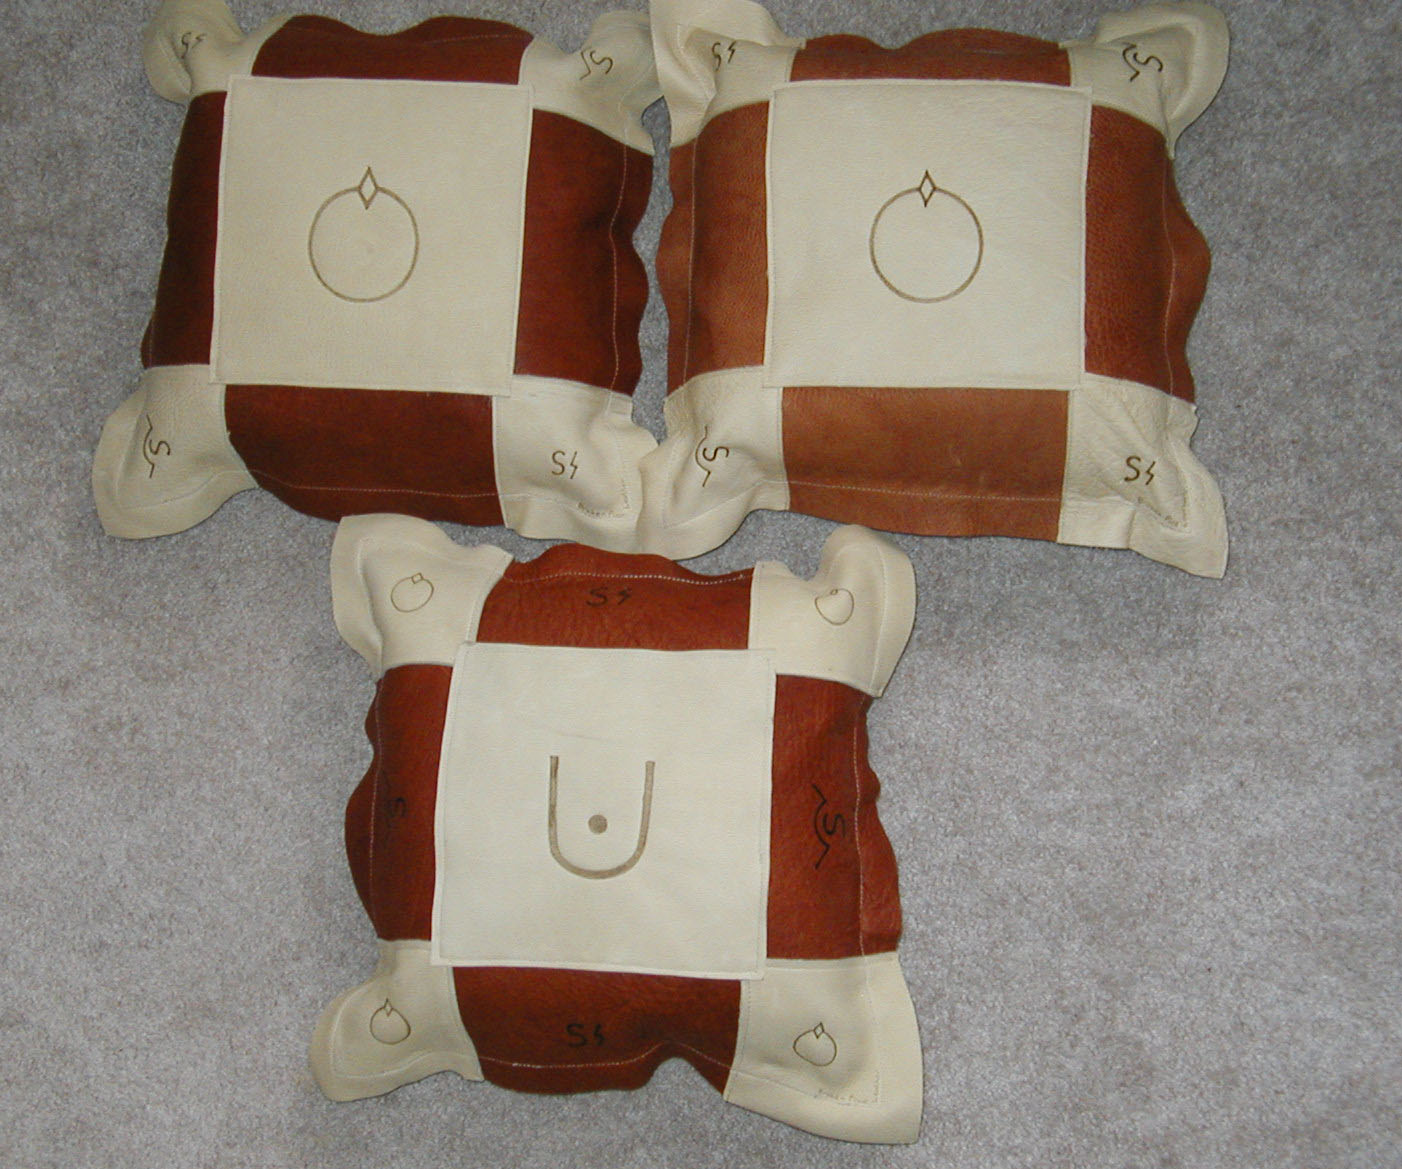 Branded pillows image of three